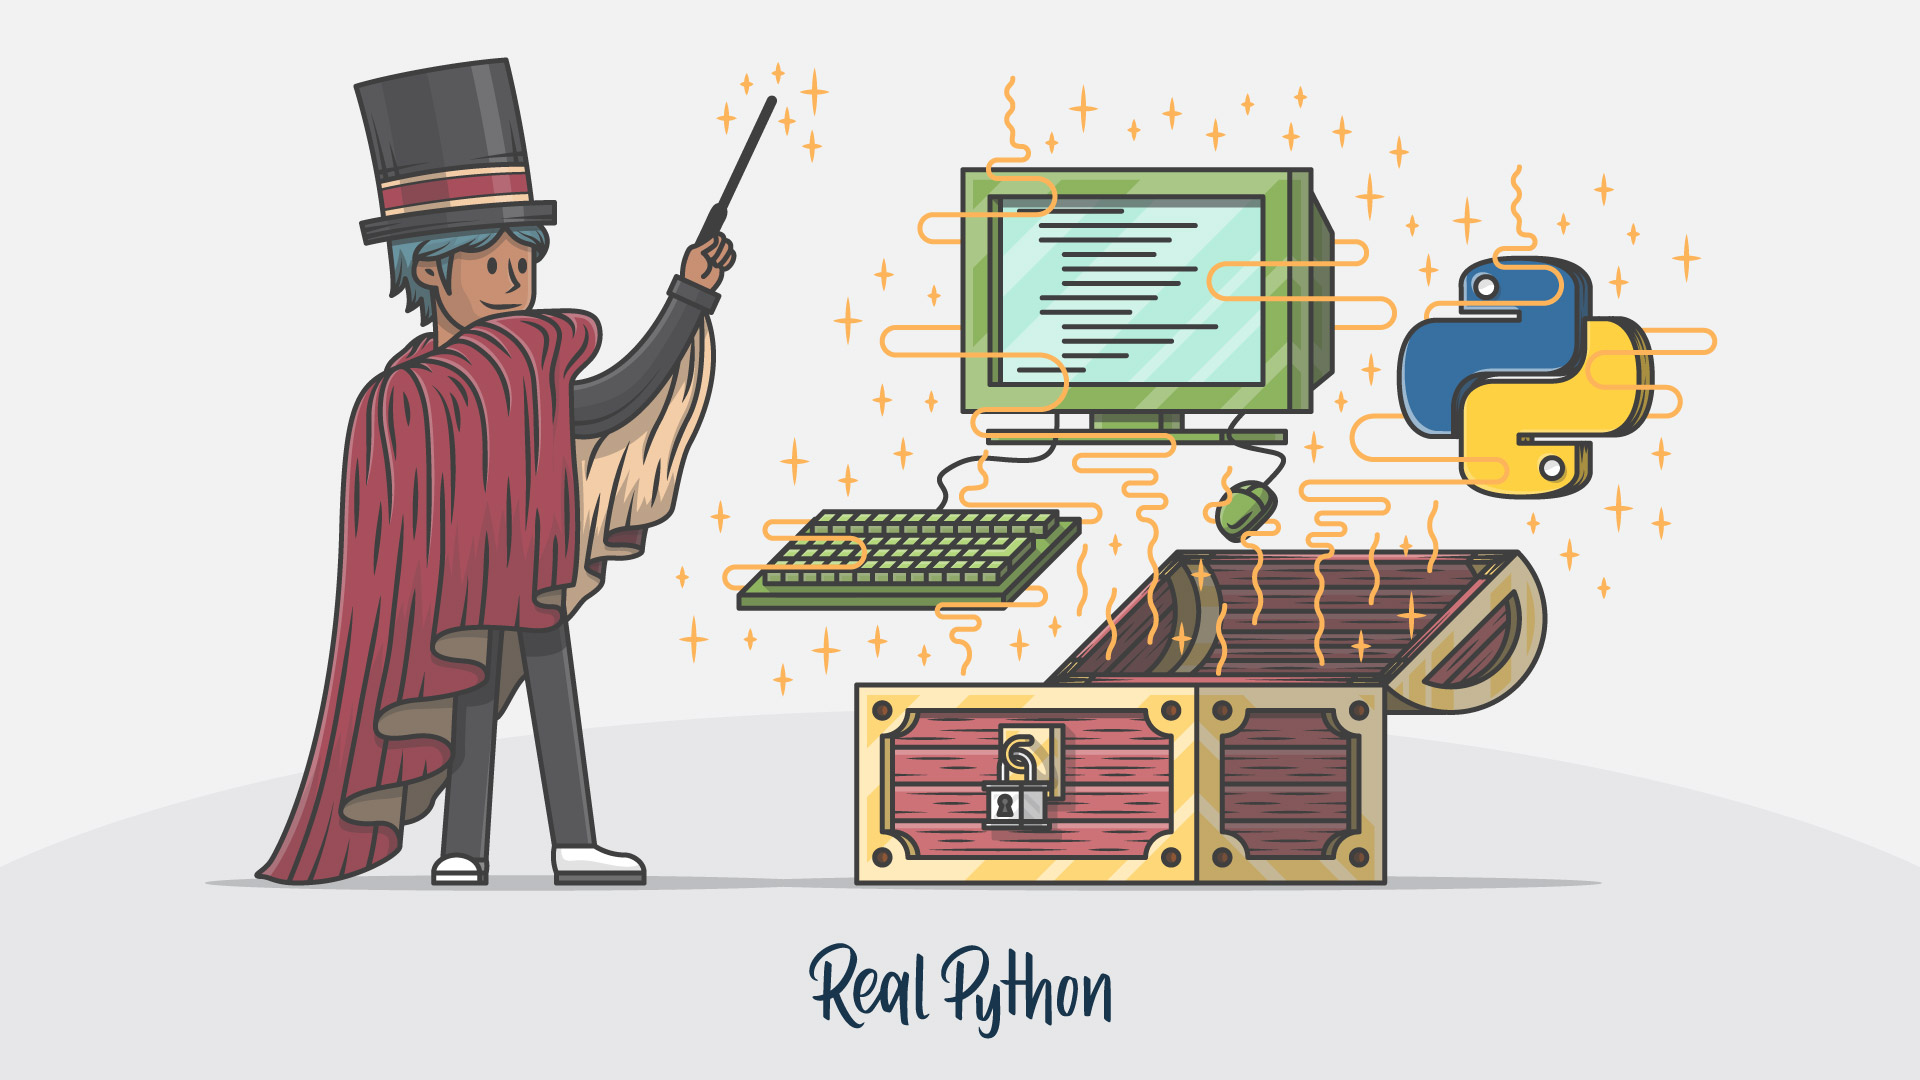 Sims 3 Serre Attention Aux Jets De Pierre Improve Your Python With Python Tricks Real Python